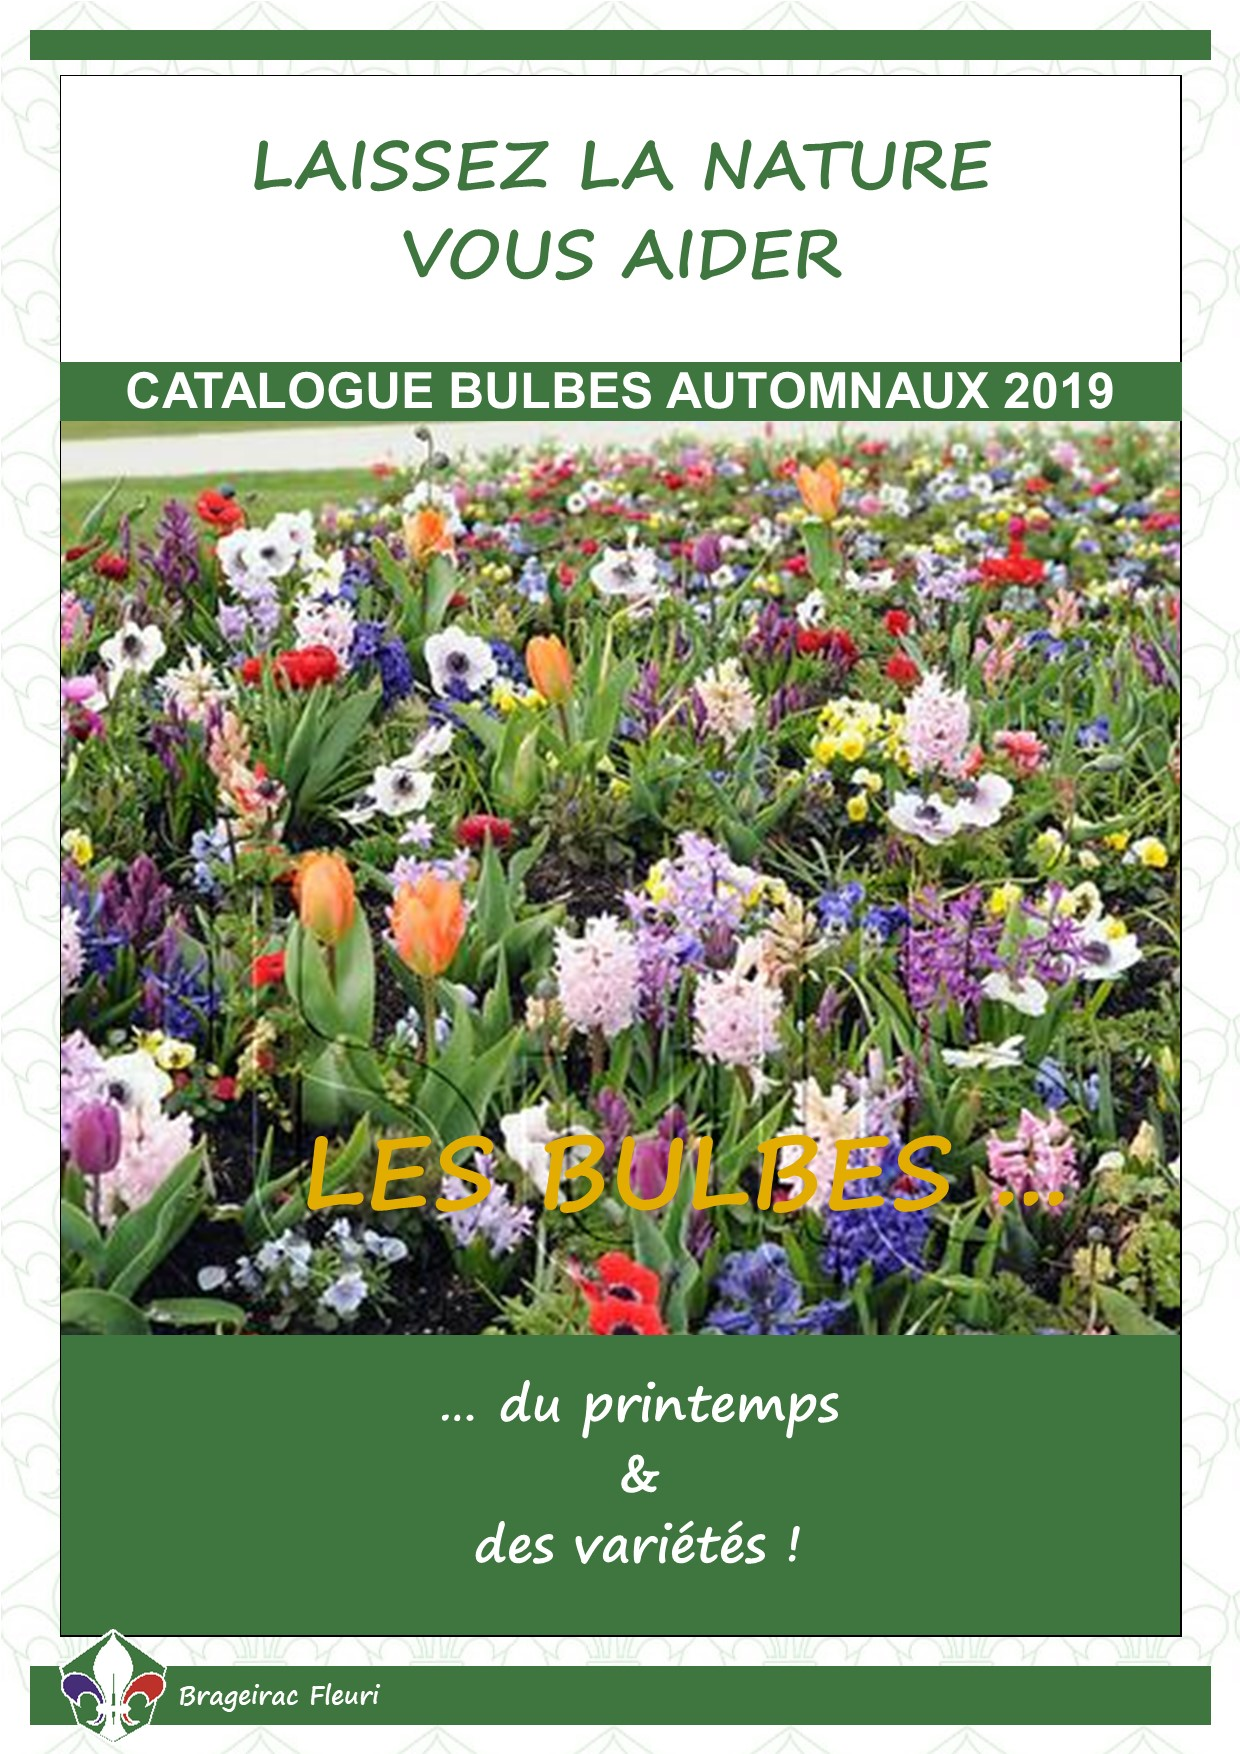 Catalogue bulbes automnaux 2019